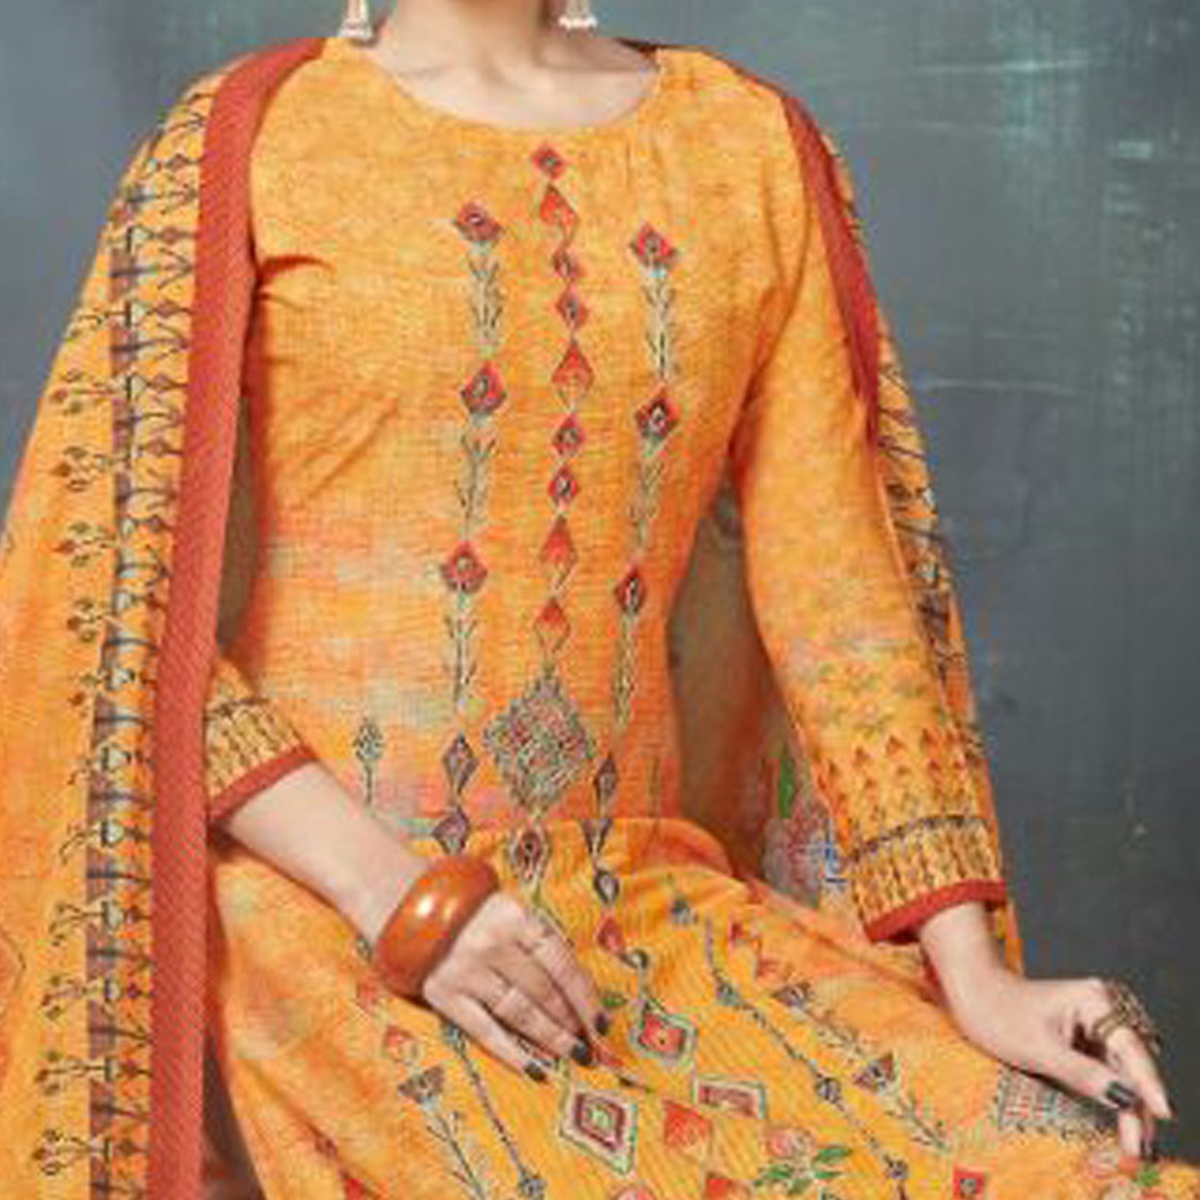 Flamboyant Orange Colored Digital Printed And Embroidered Muslin Cotton Salwar Suit